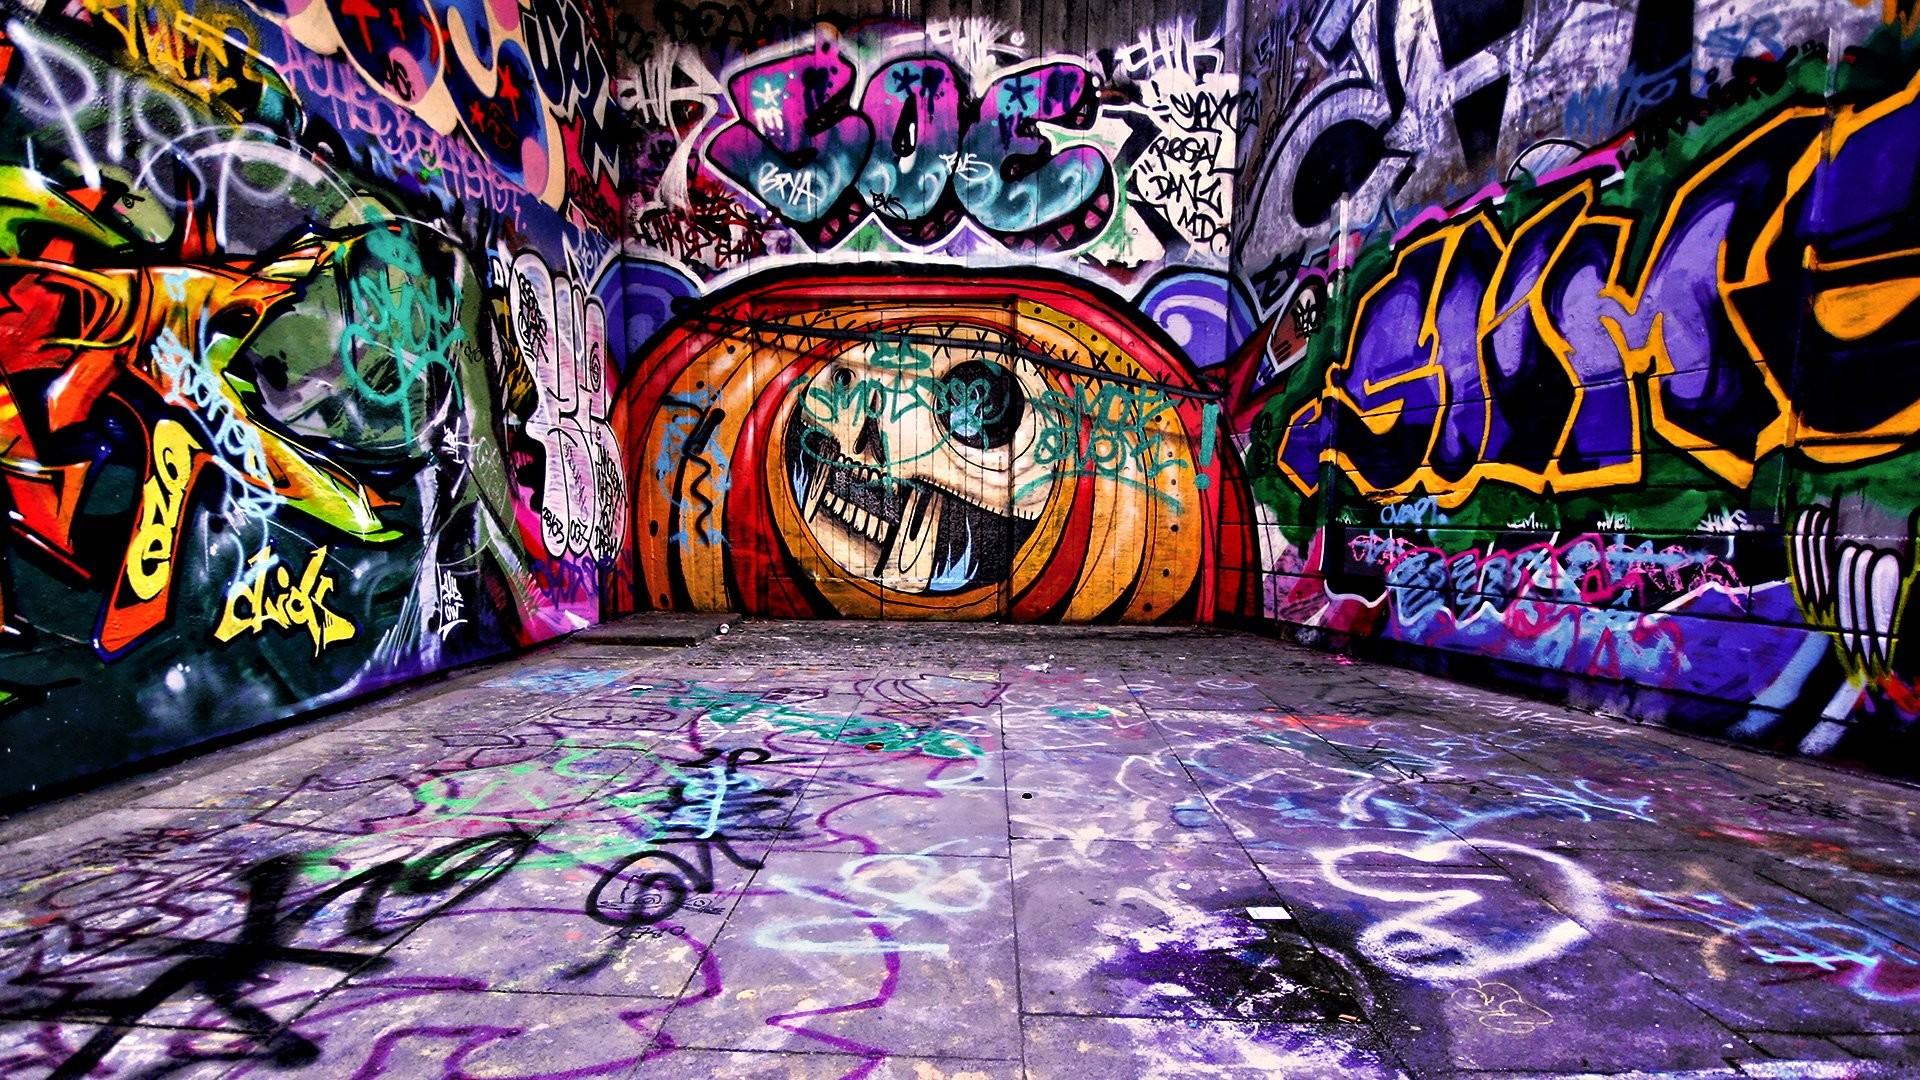 1920x1080 Samsung Galaxy S3 Graffiti Wallpapers HD, Desktop Backgrounds 720x1280 |  Download Wallpaper | Pinterest | Graffiti wallpaper, Wallpaper and Hd  desktop